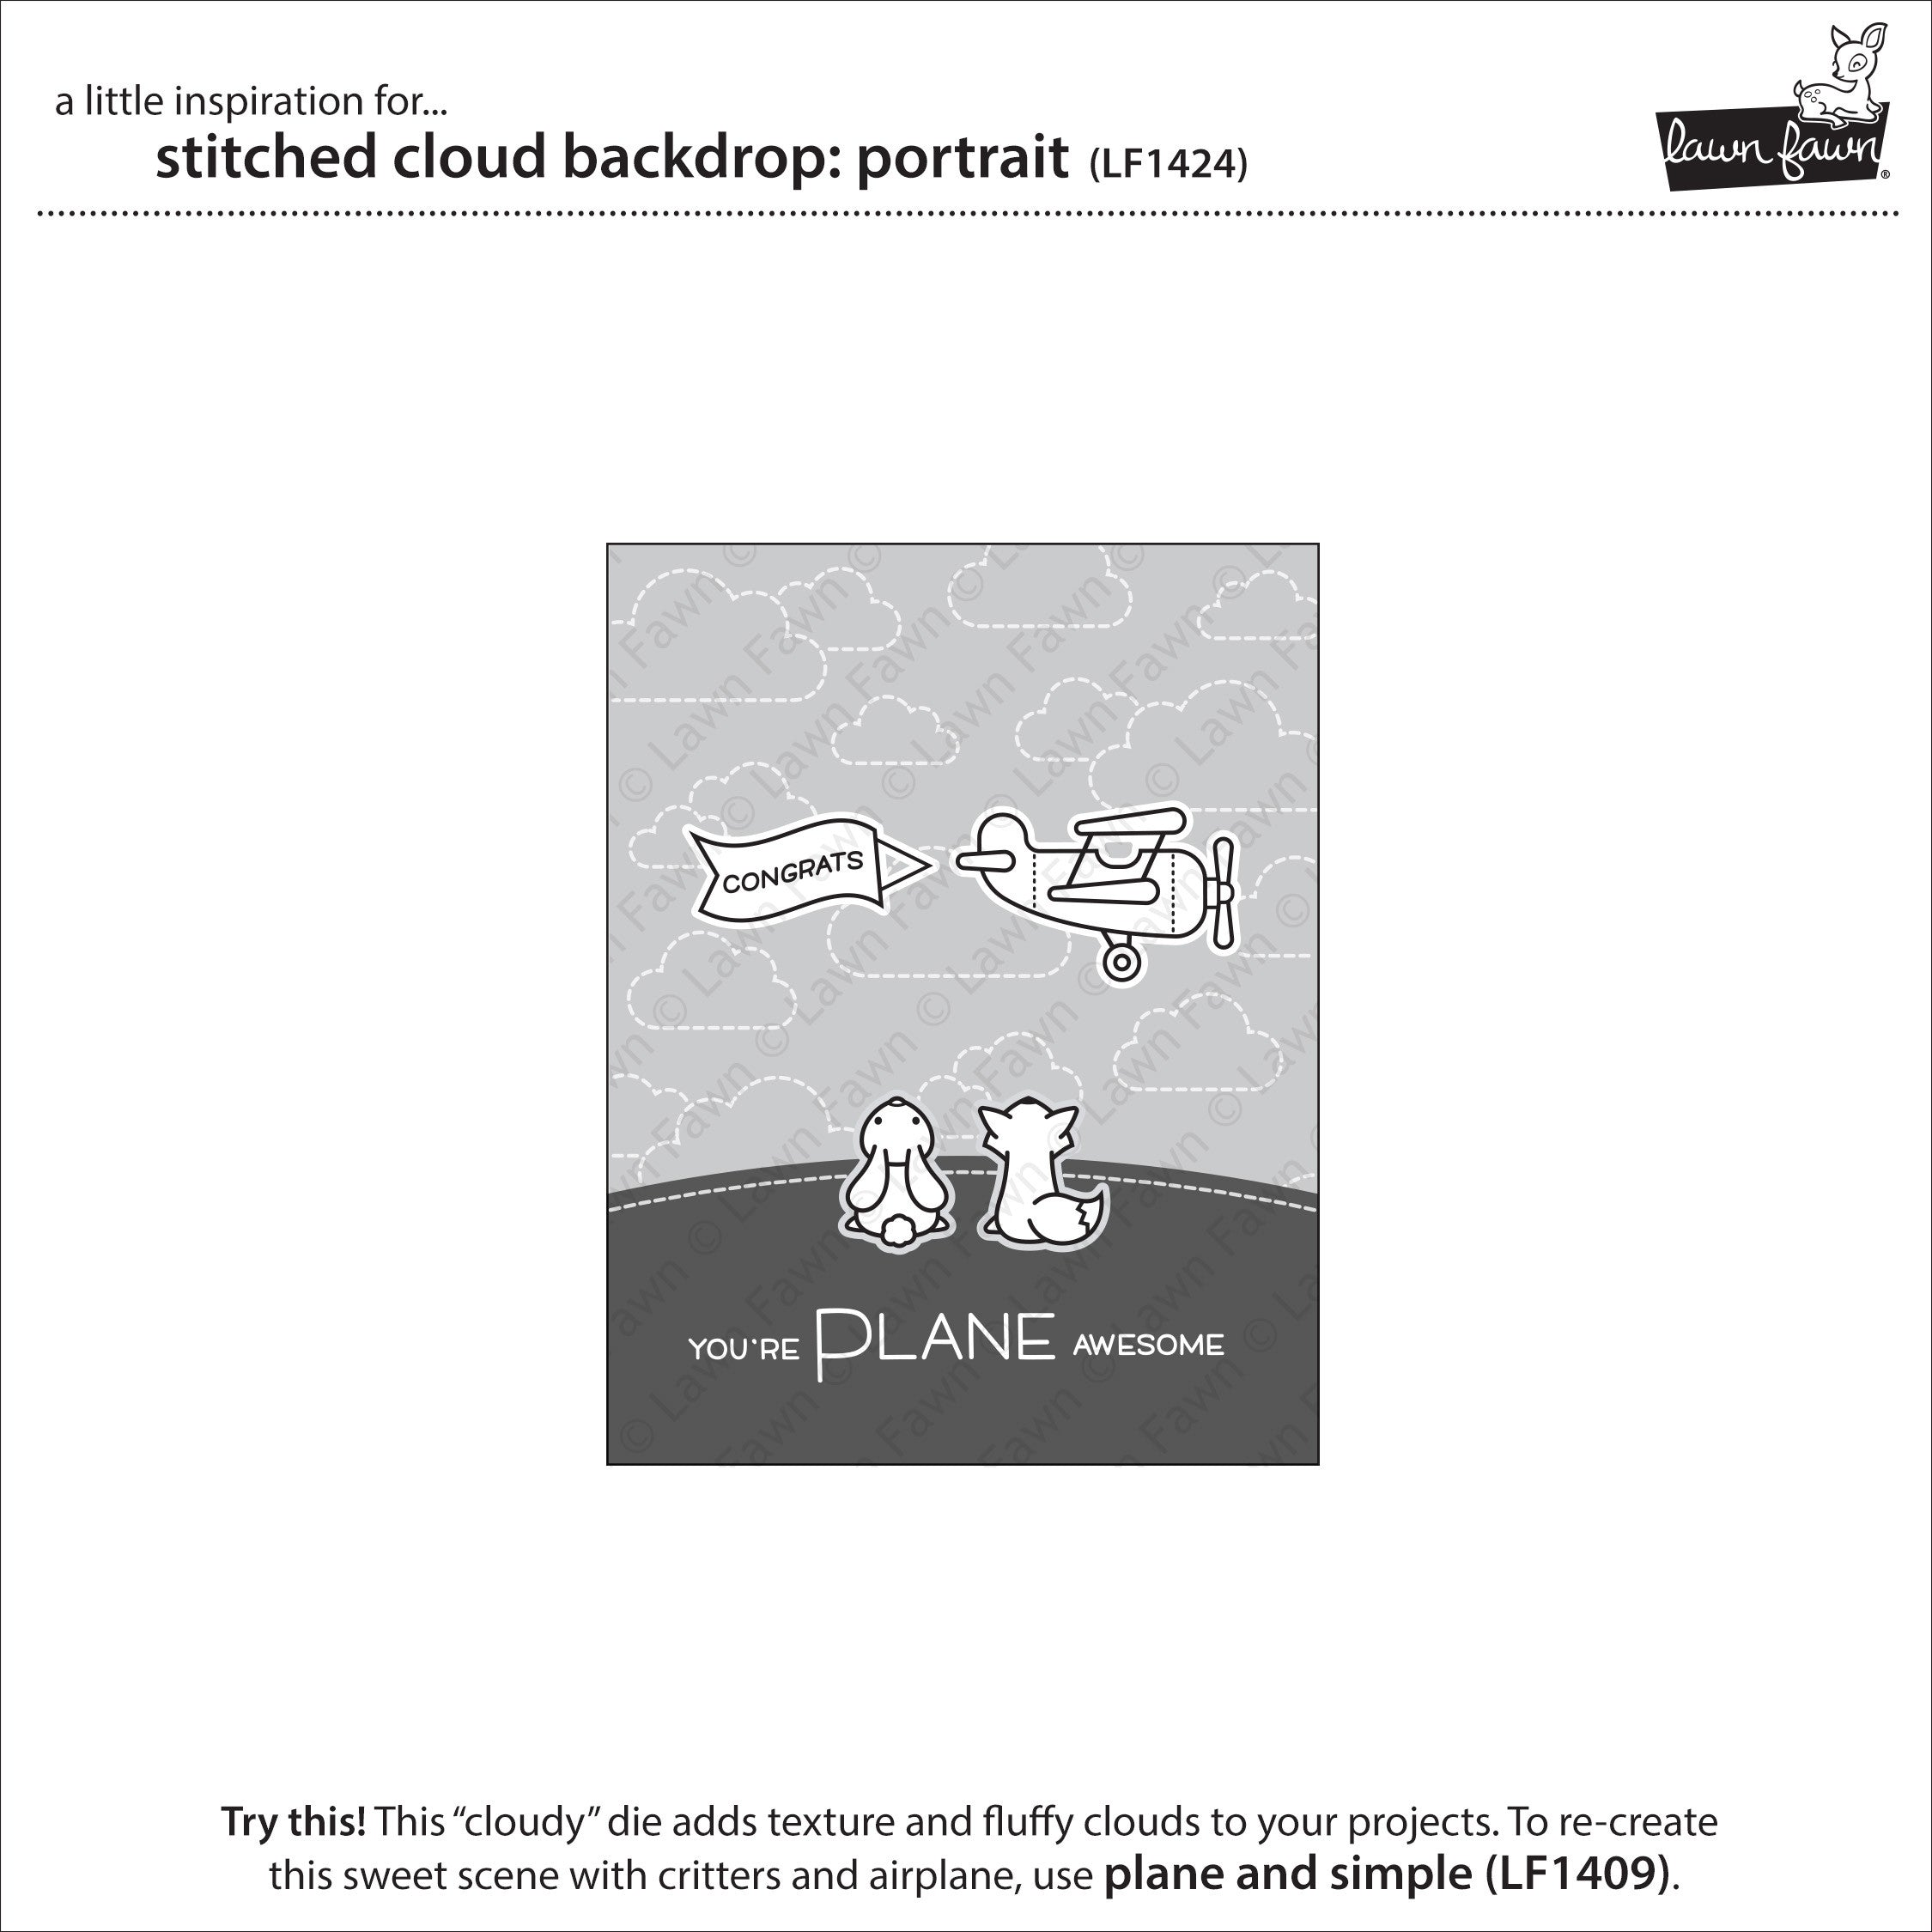 stitched cloud backdrop: portrait